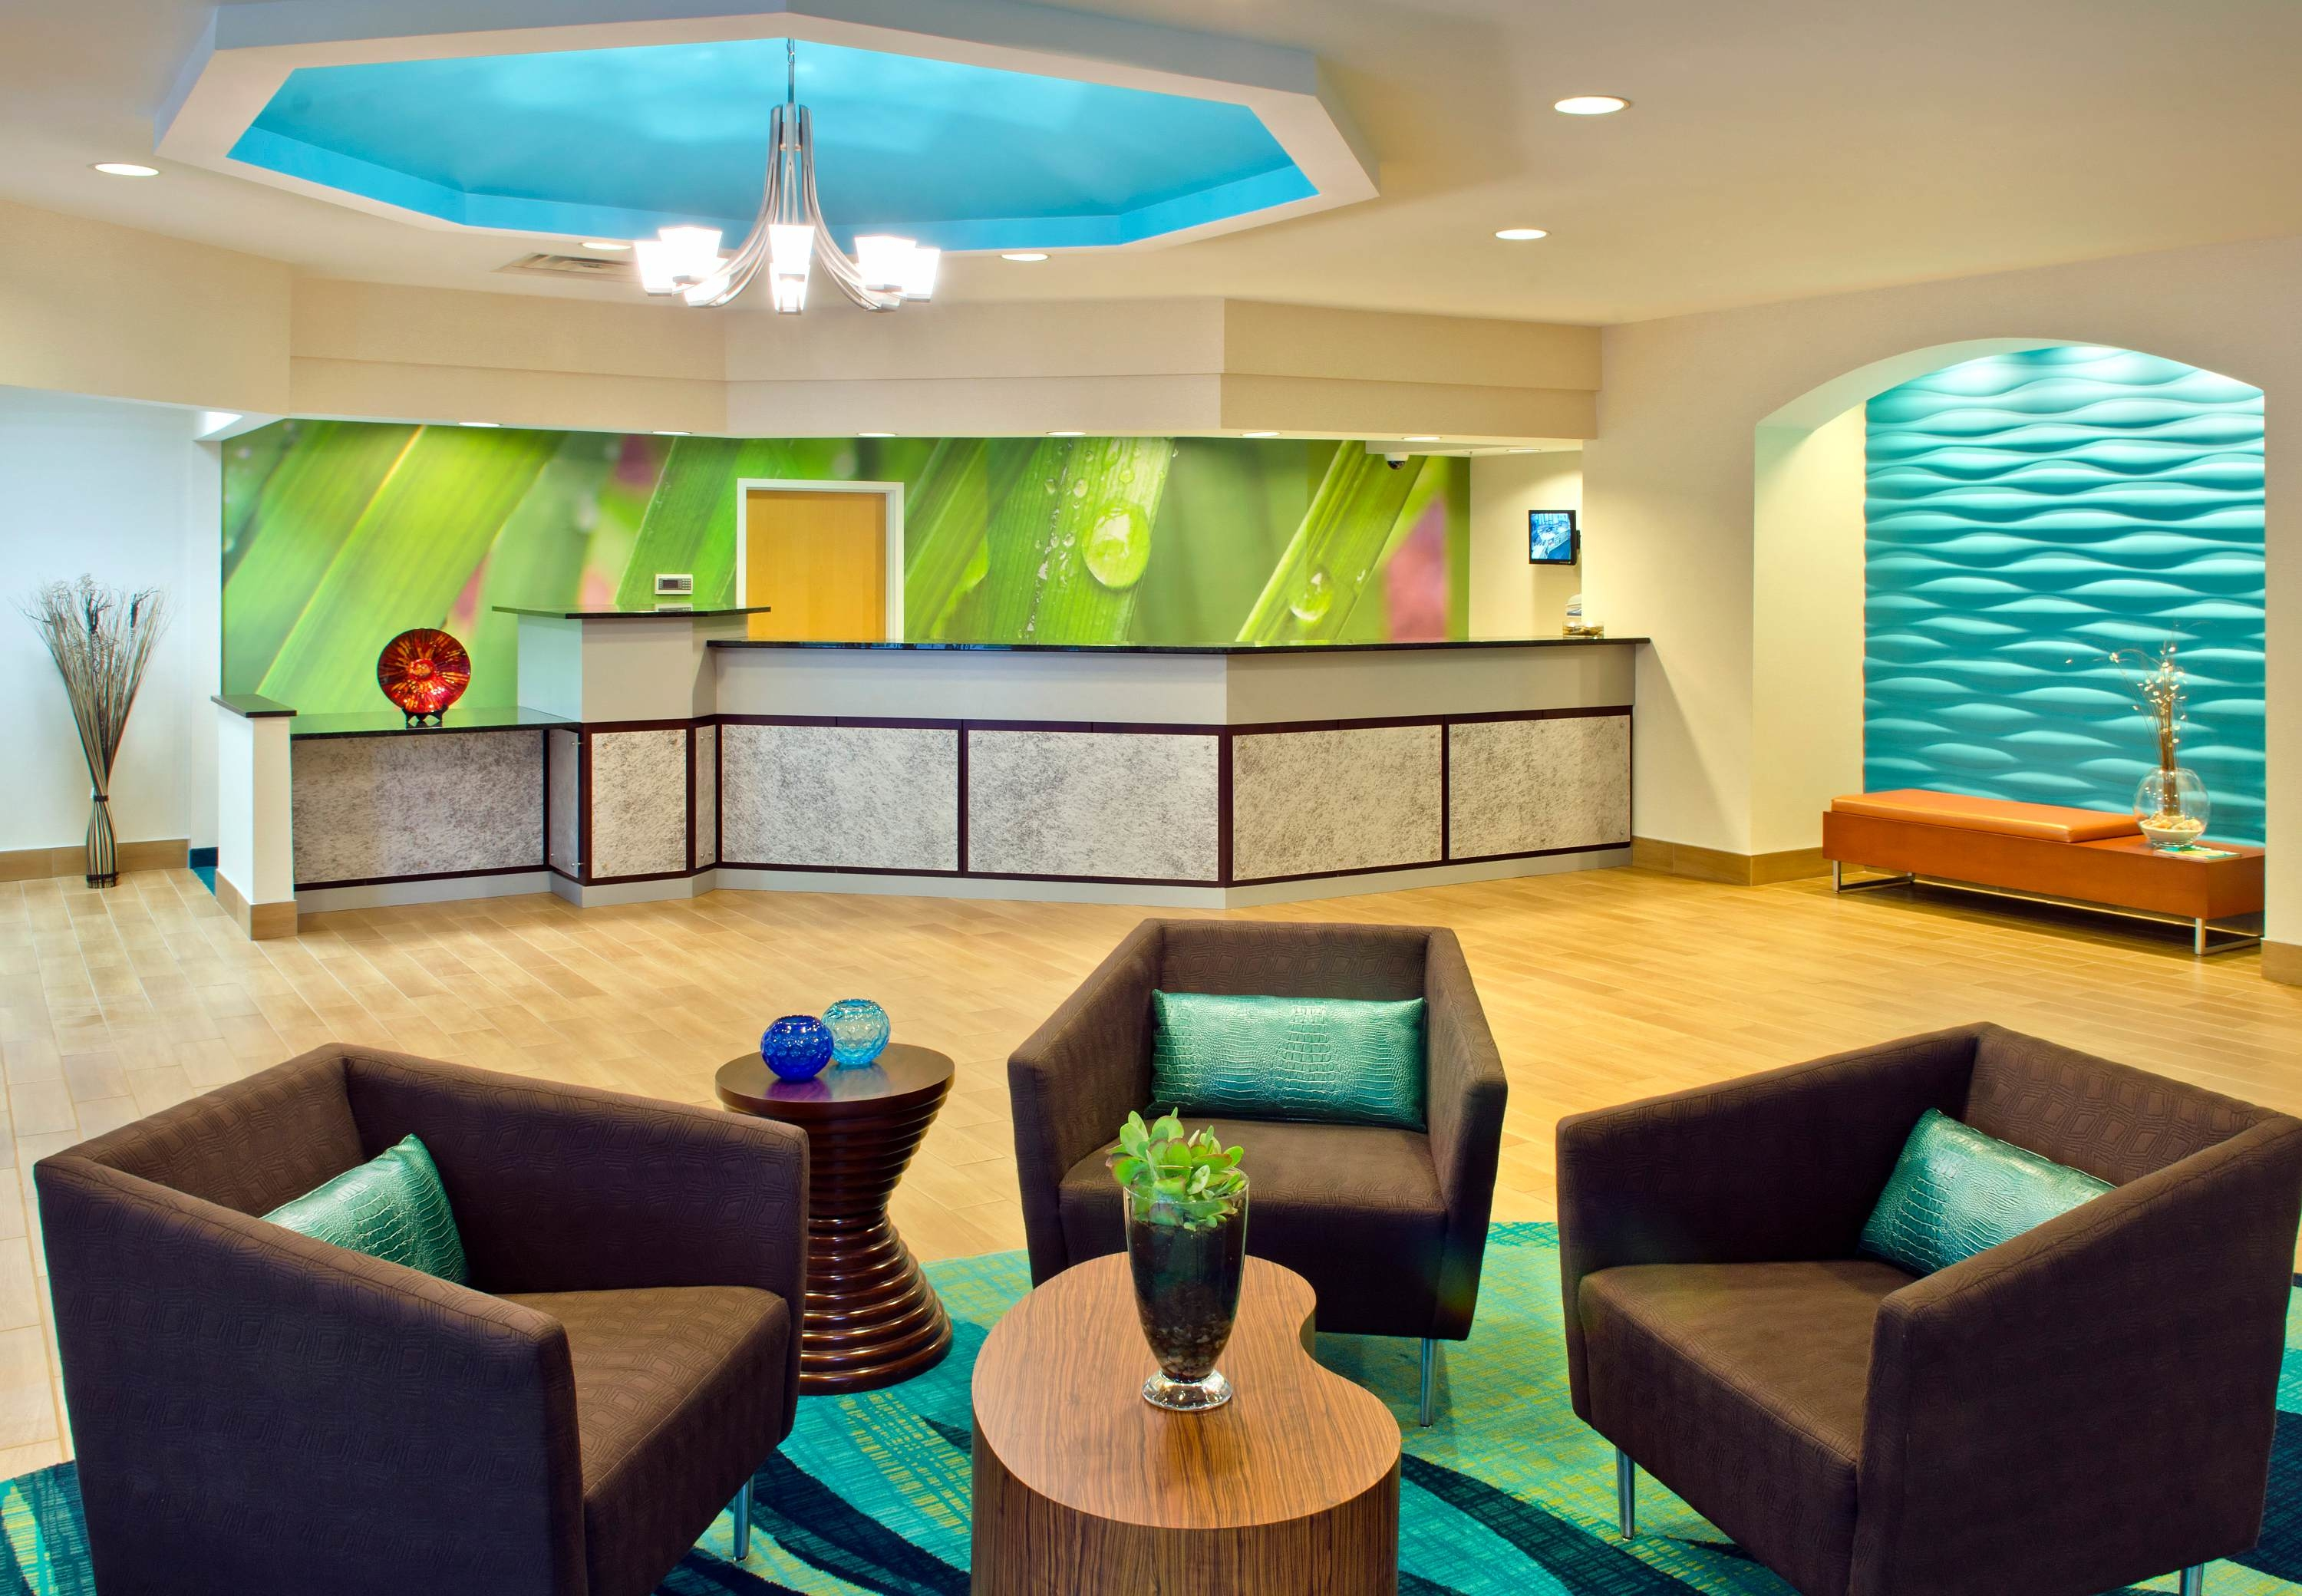 SpringHill Suites by Marriott Boston Andover image 7